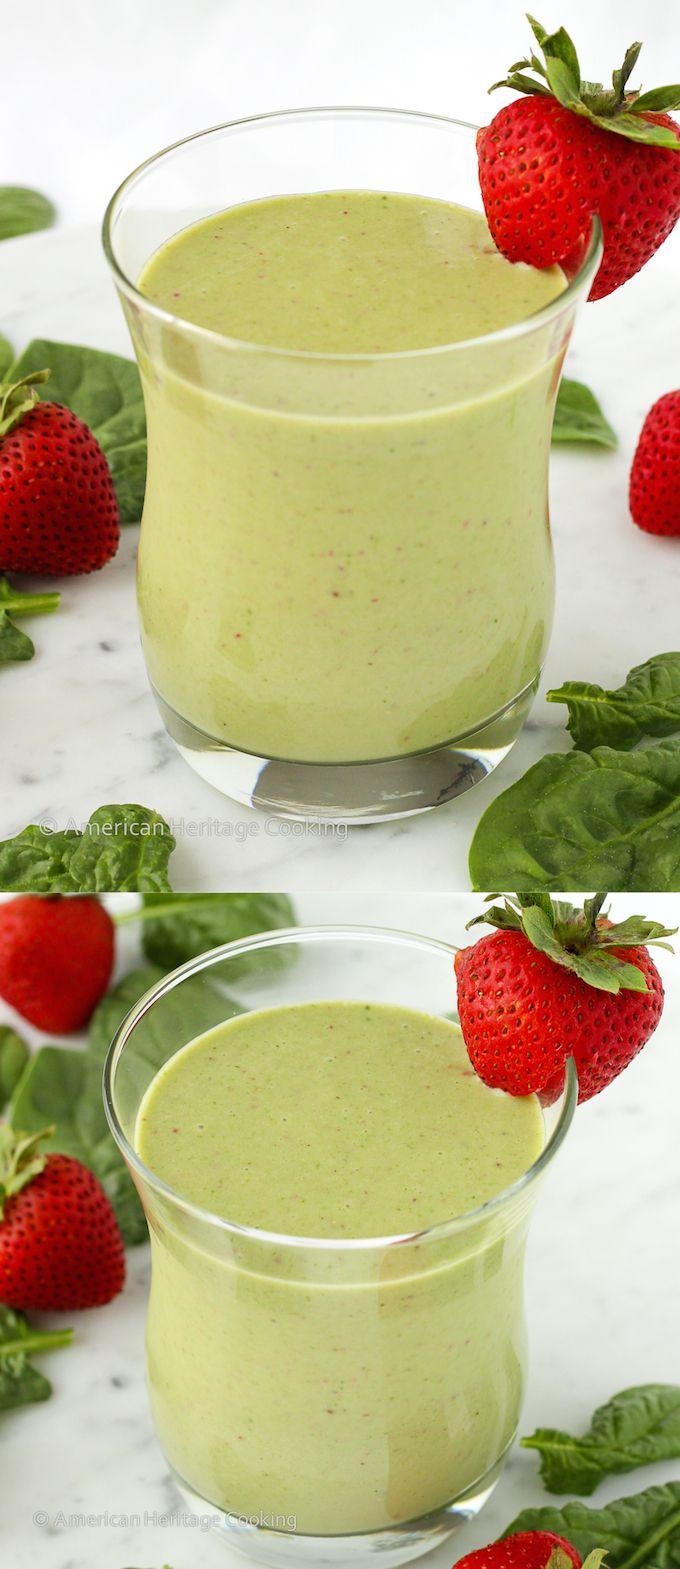 This easy recipe for a healthy Strawberry Banana Spinach Smoothie is fast, easy and delicious!!!